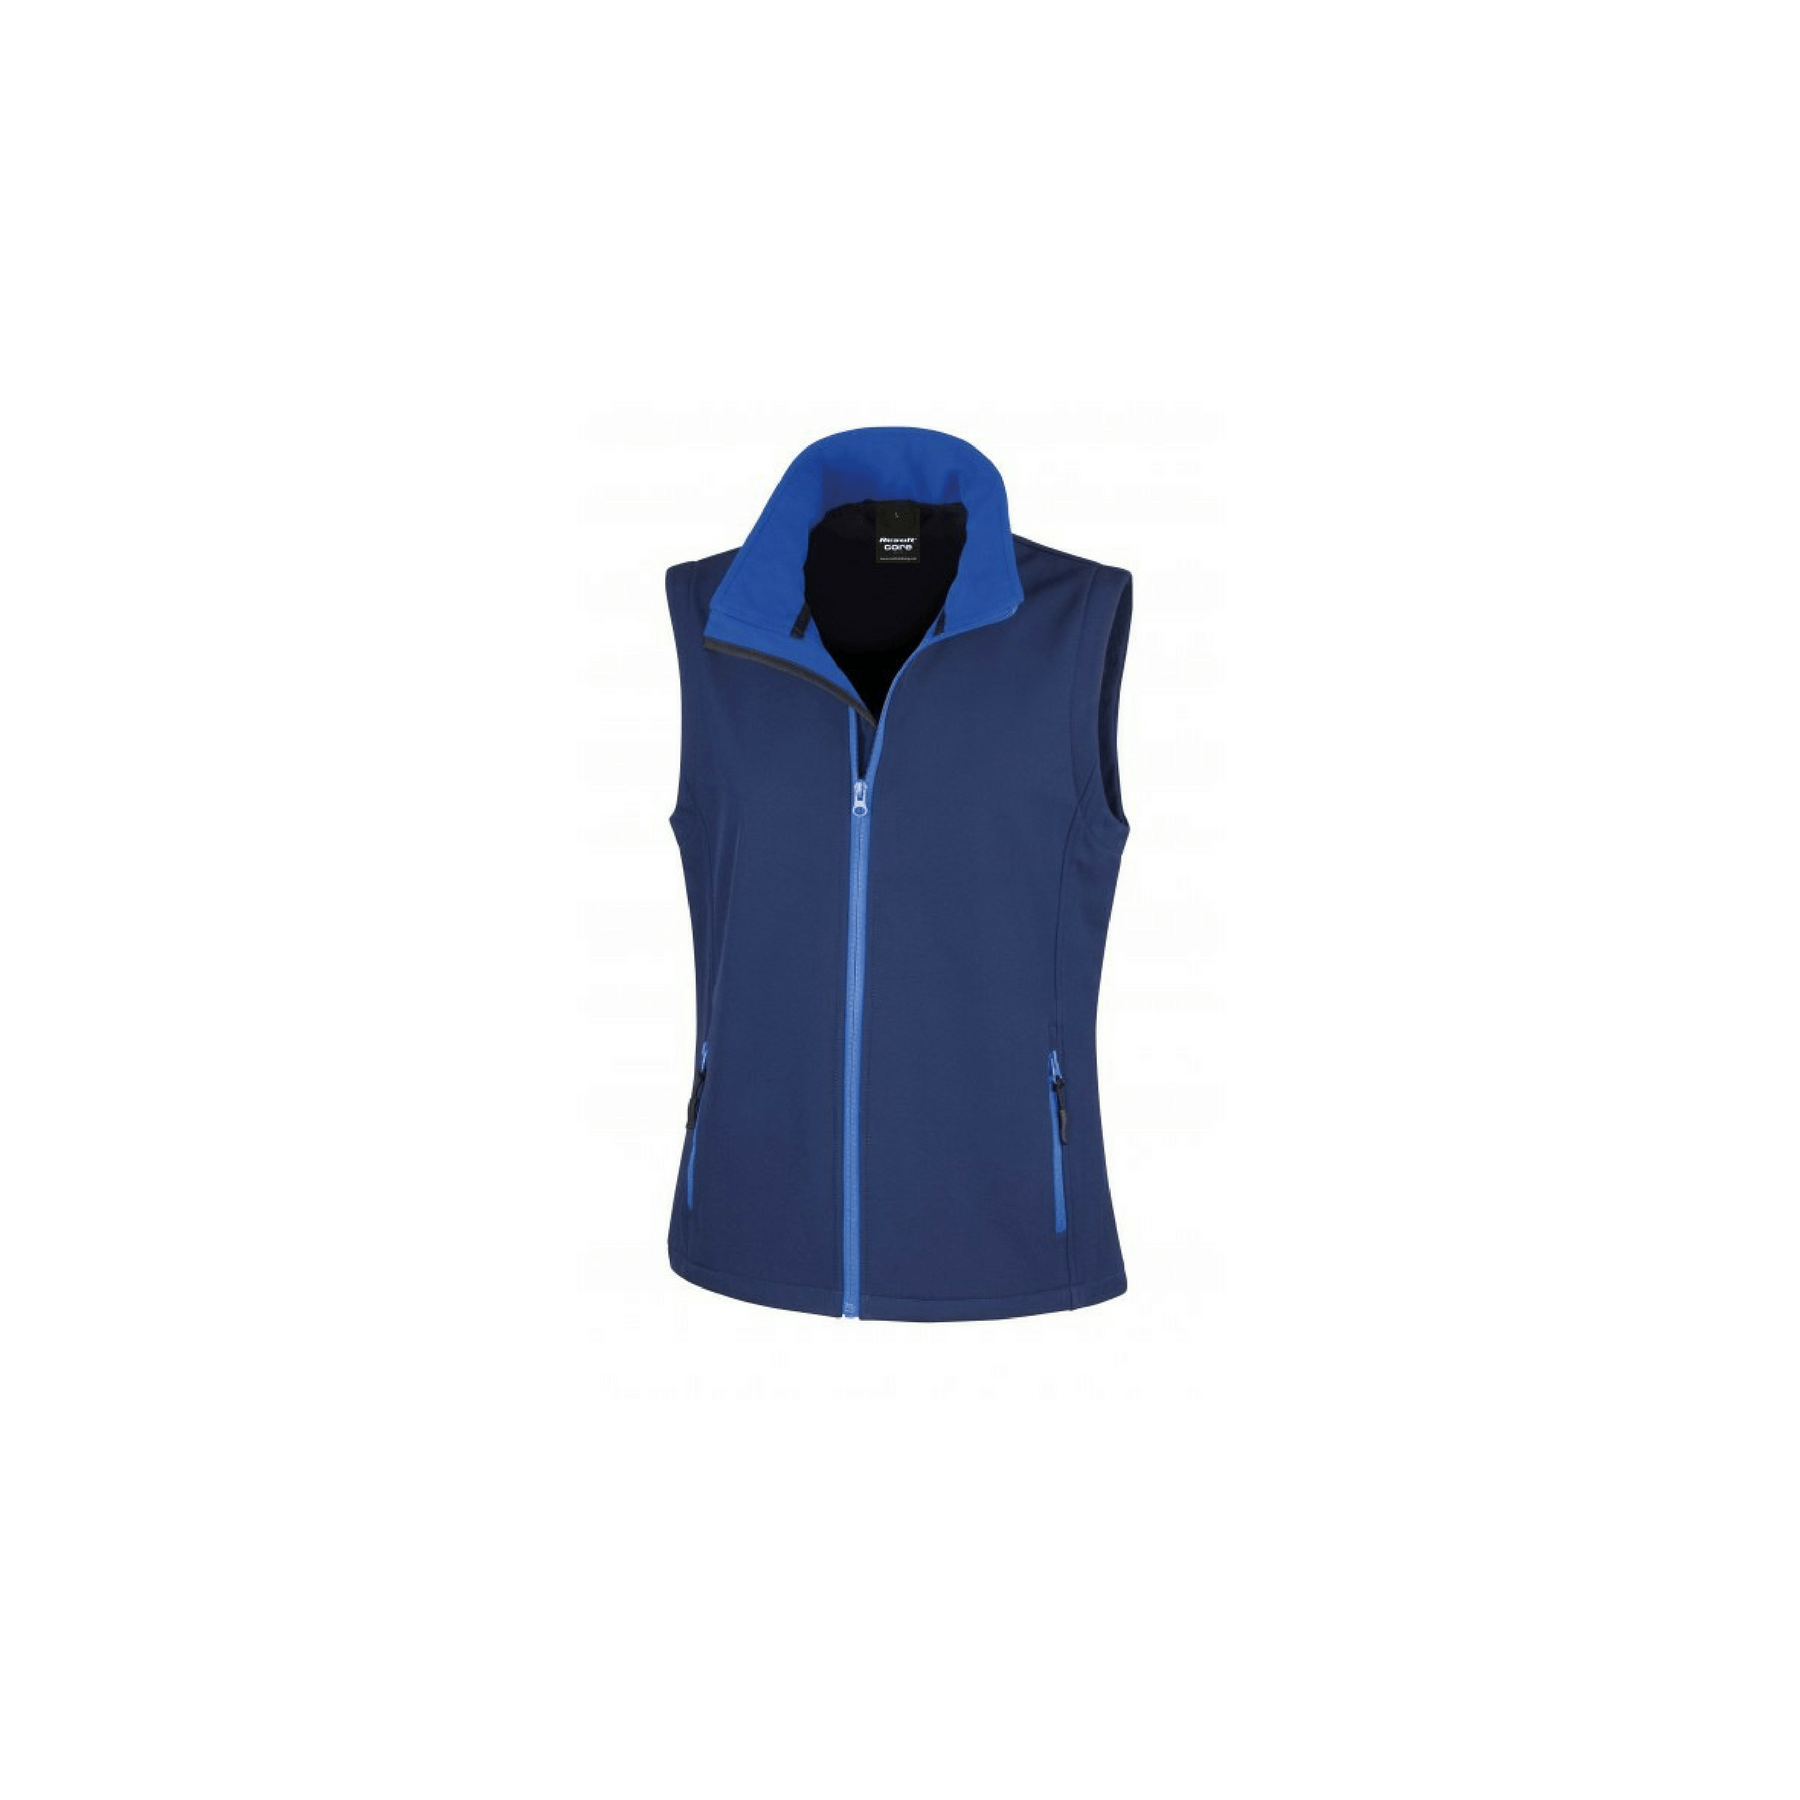 Gilet sans manches softshell femme Result - Navy / royal